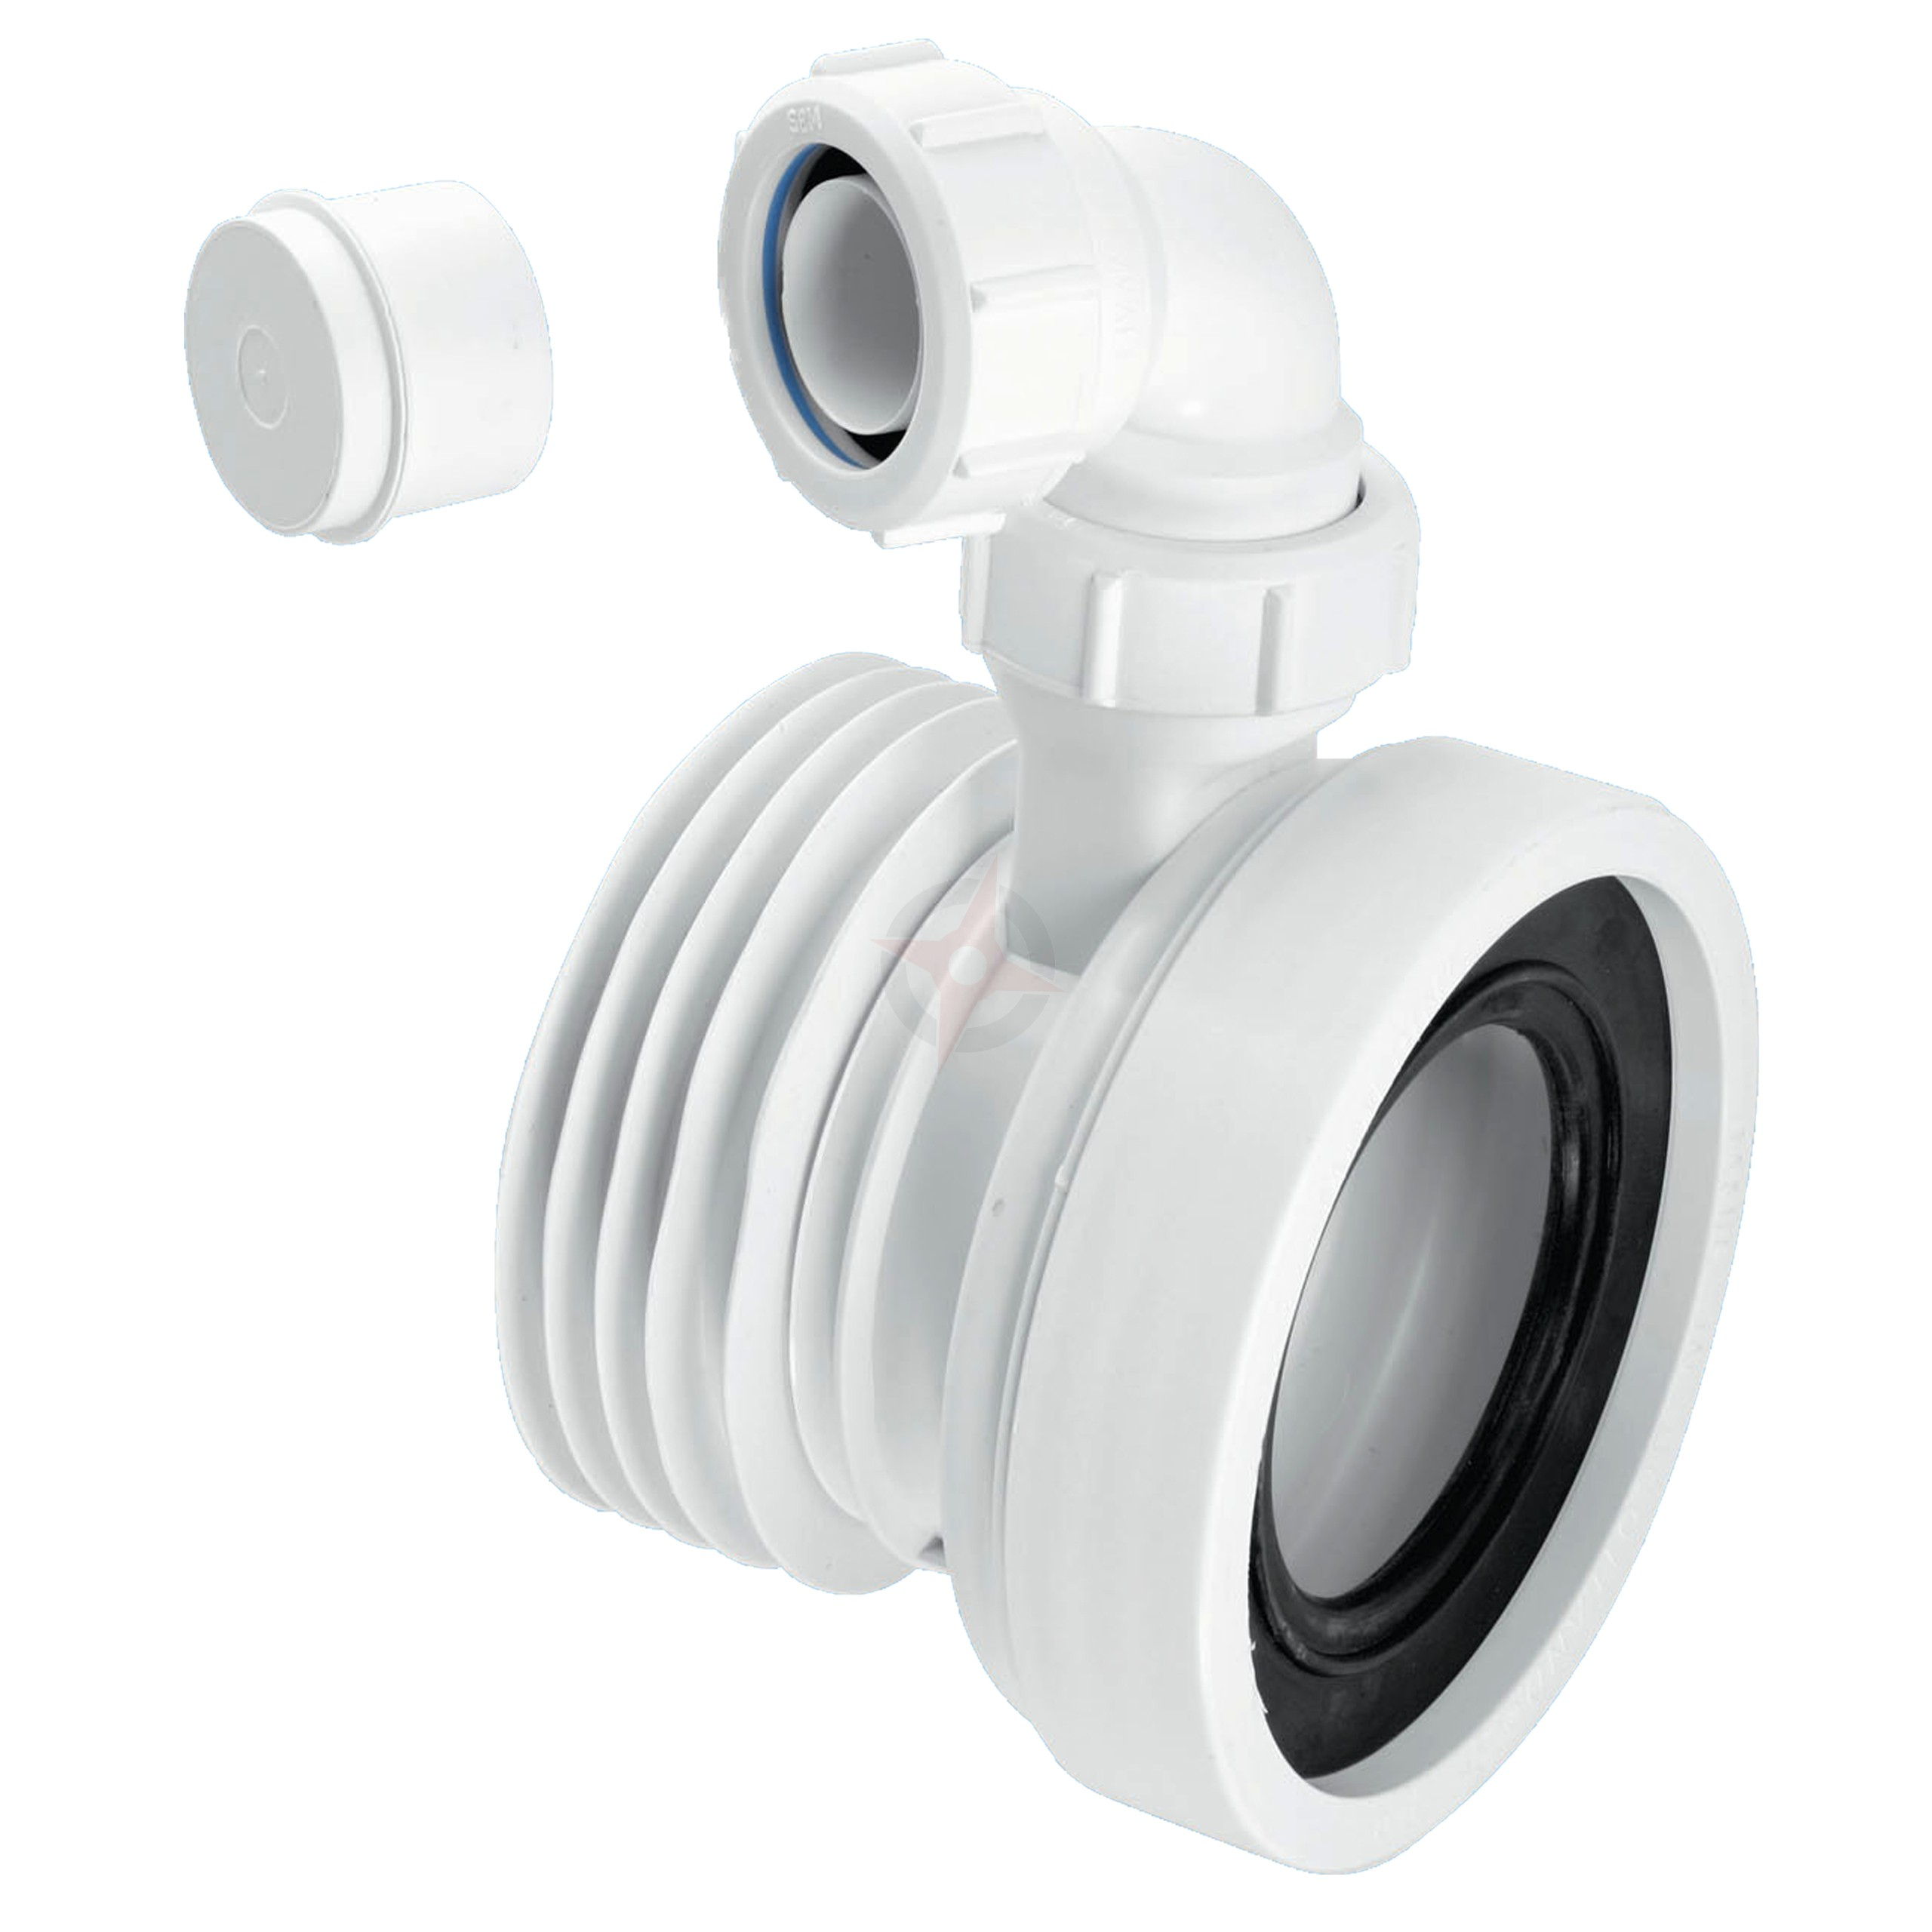 McAlpine 110mm Straight Pan Connector c/w Vent Boss WC-CON1V